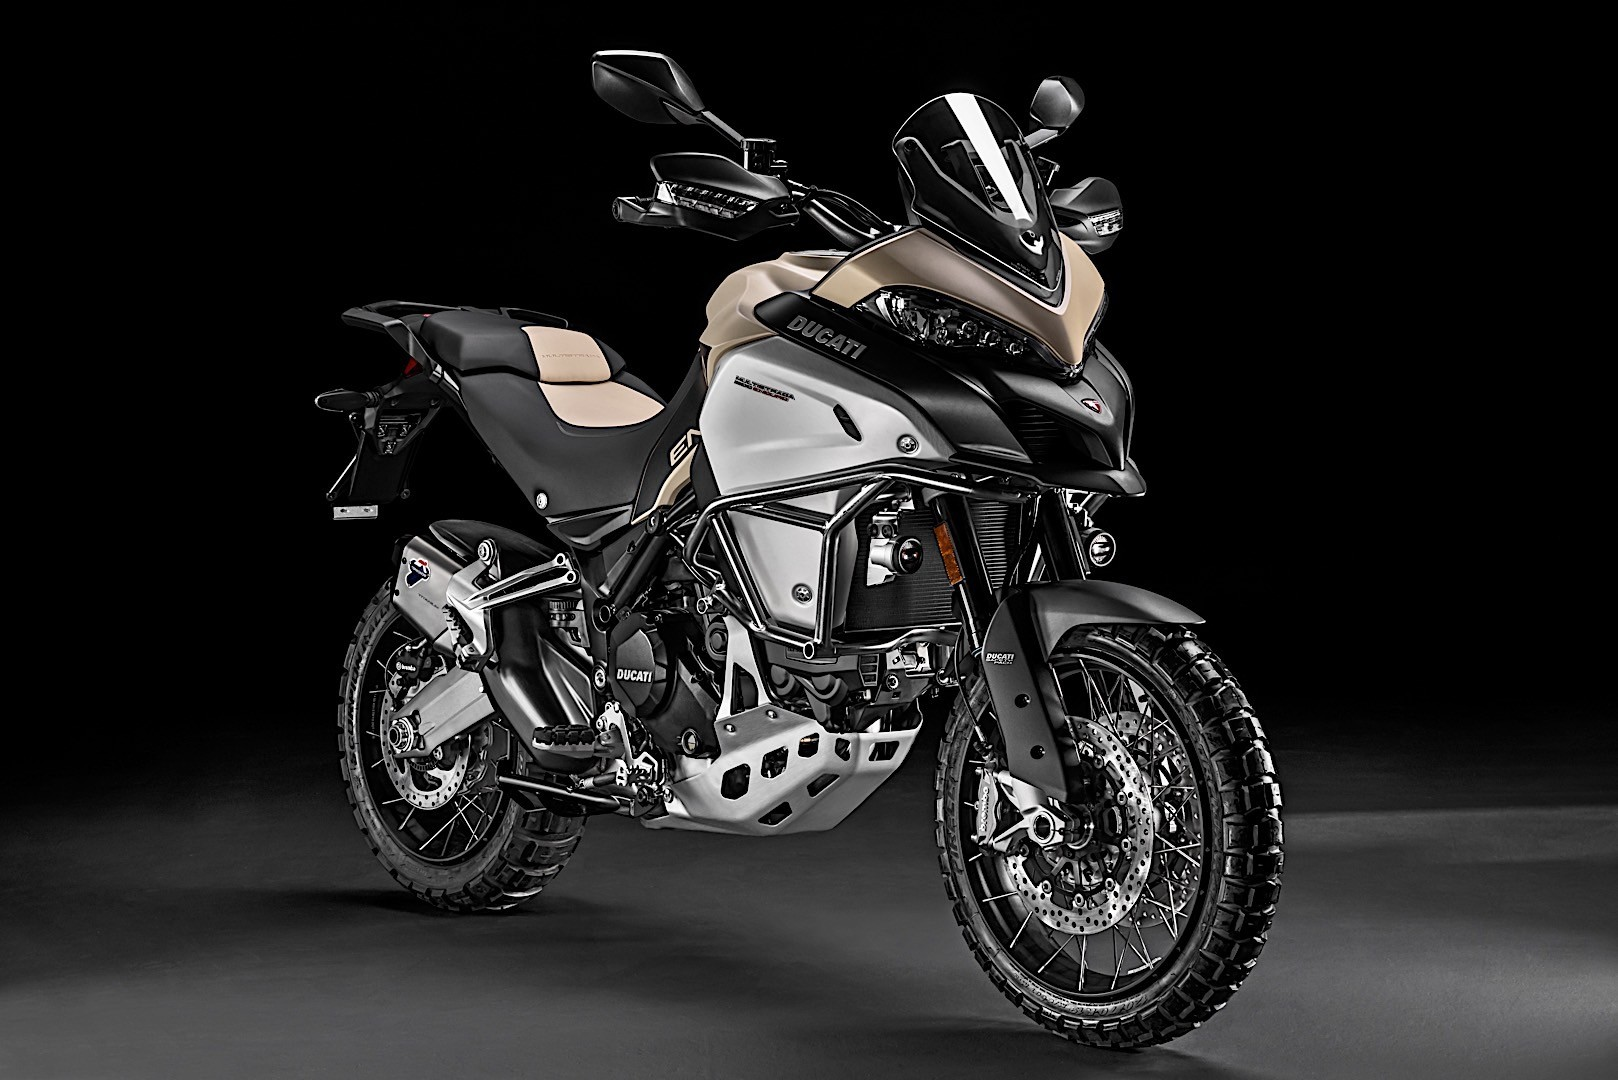 2018 ducati multistrada 1200 enduro pro gets unveiled autoevolution. Black Bedroom Furniture Sets. Home Design Ideas